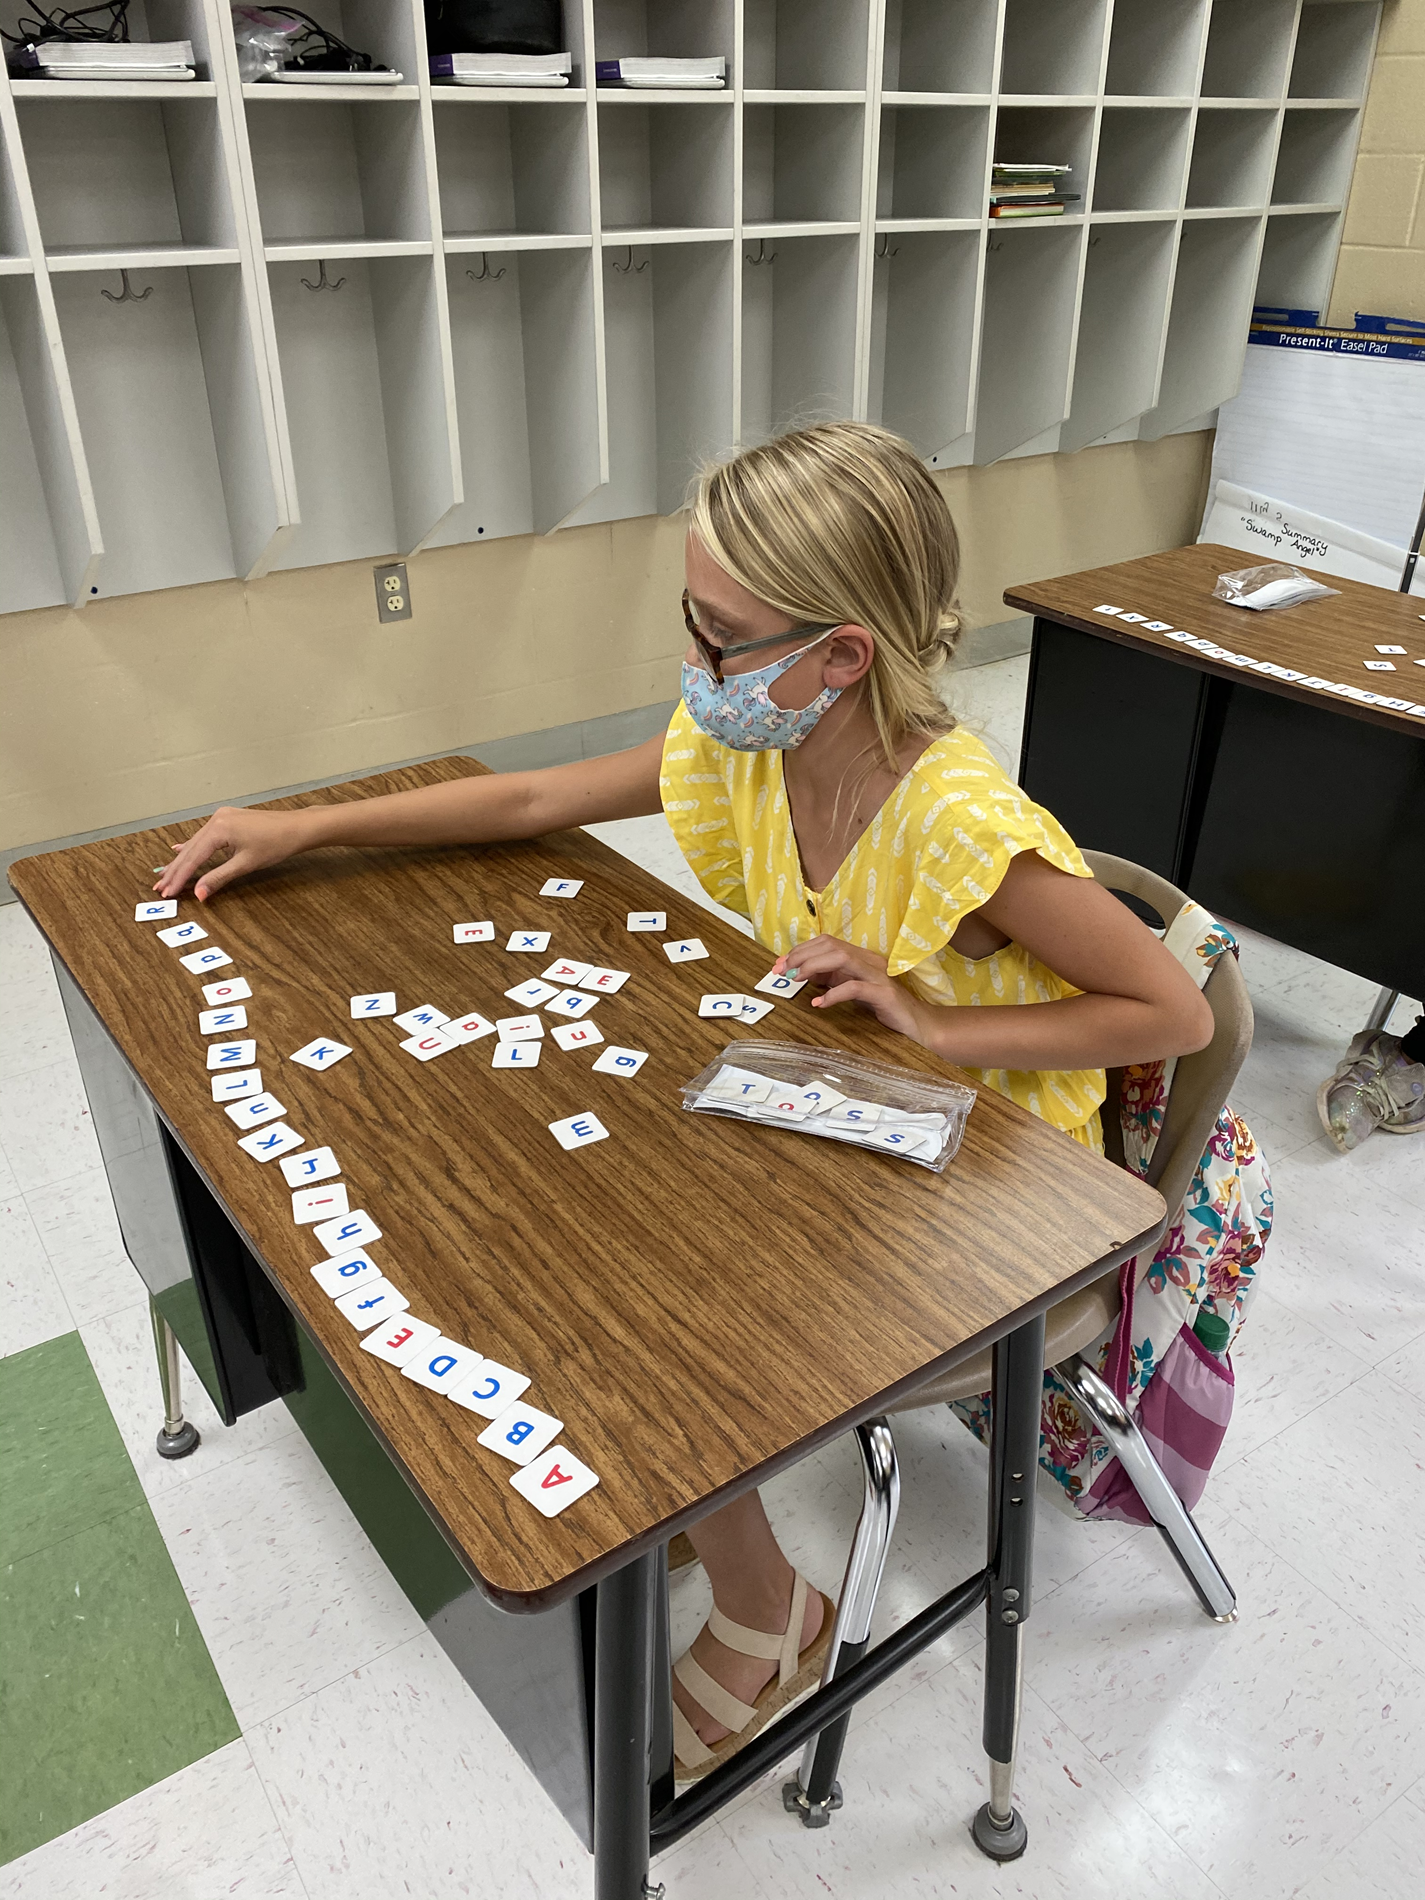 Chloe sets up her area to prepare for the phonics lesson of the day!